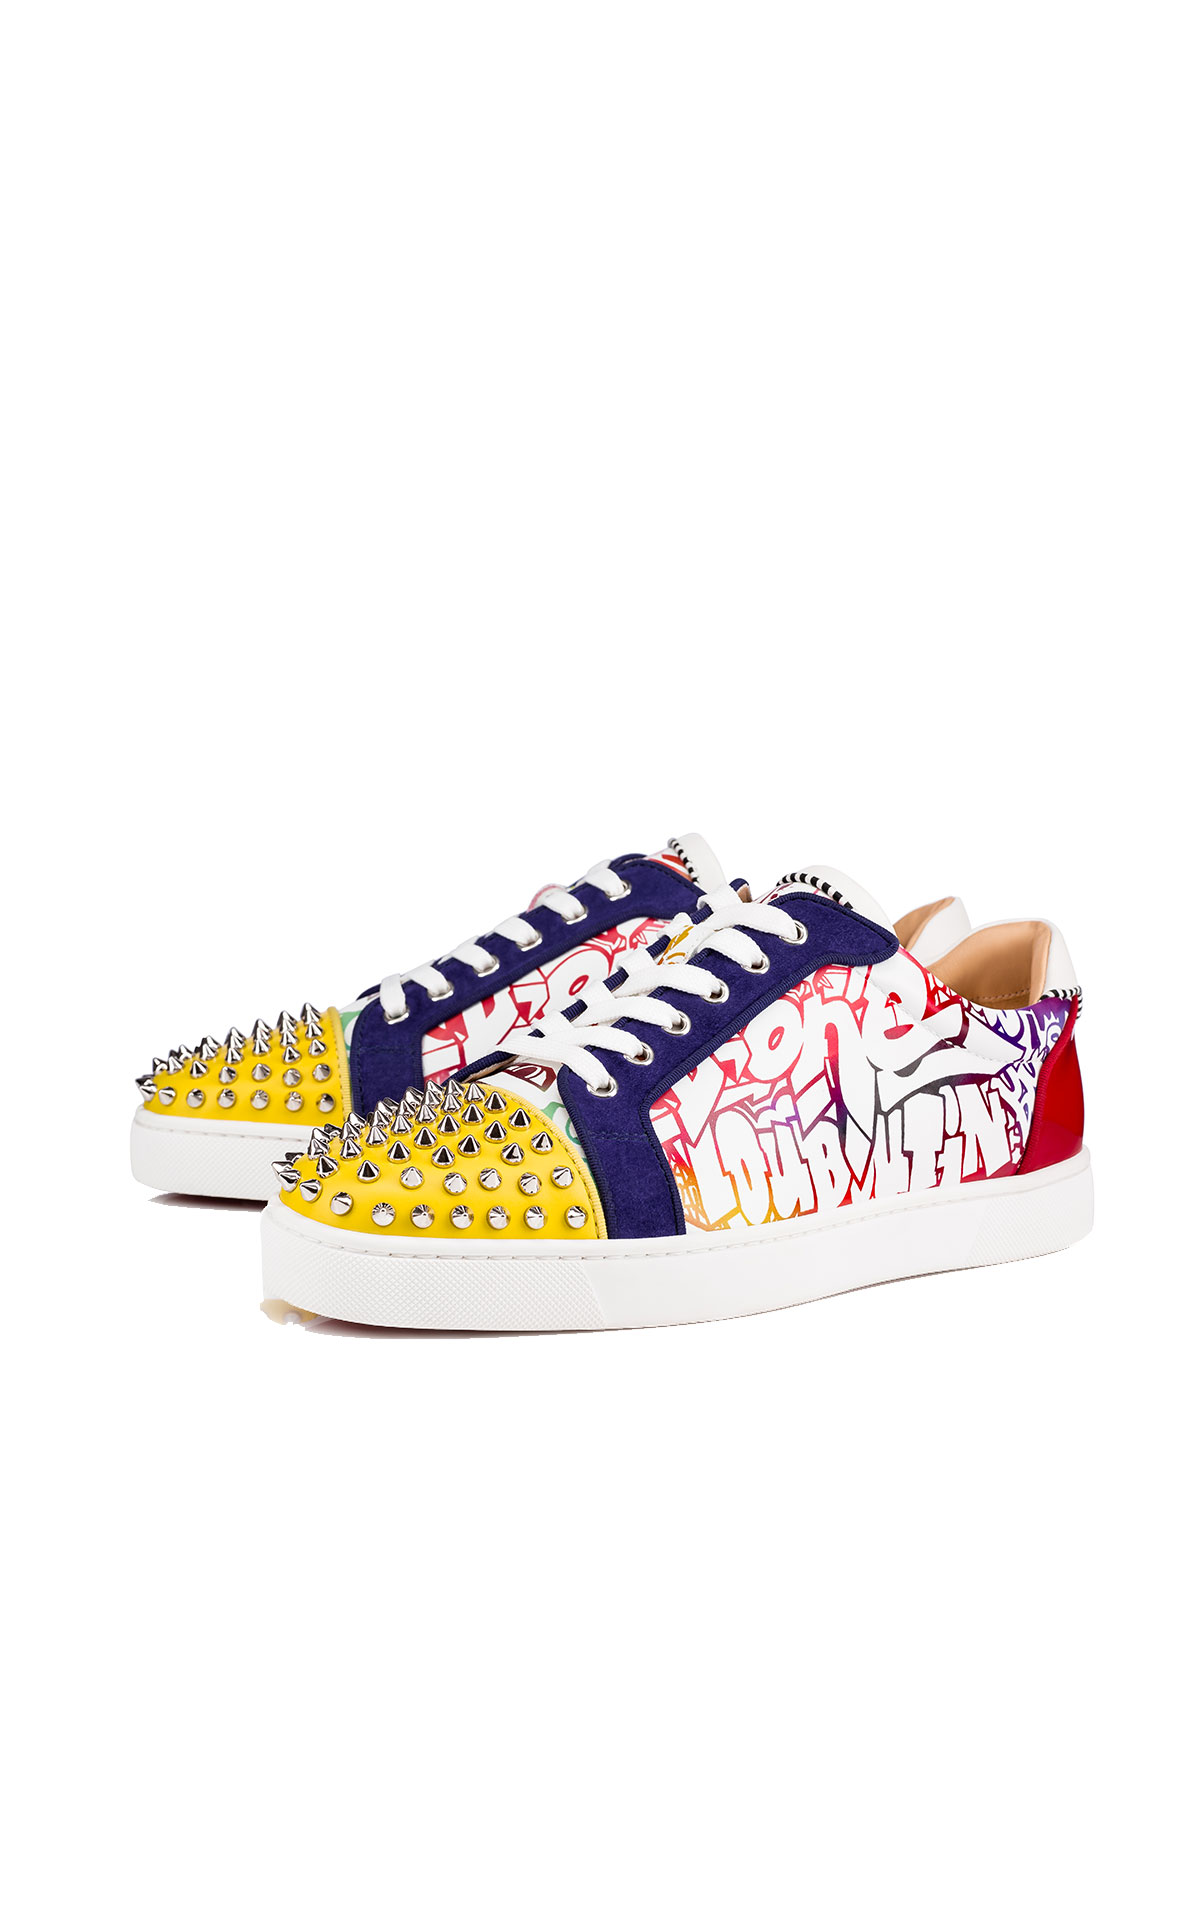 Christian Louboutin Sevaste spikes from Bicester Village